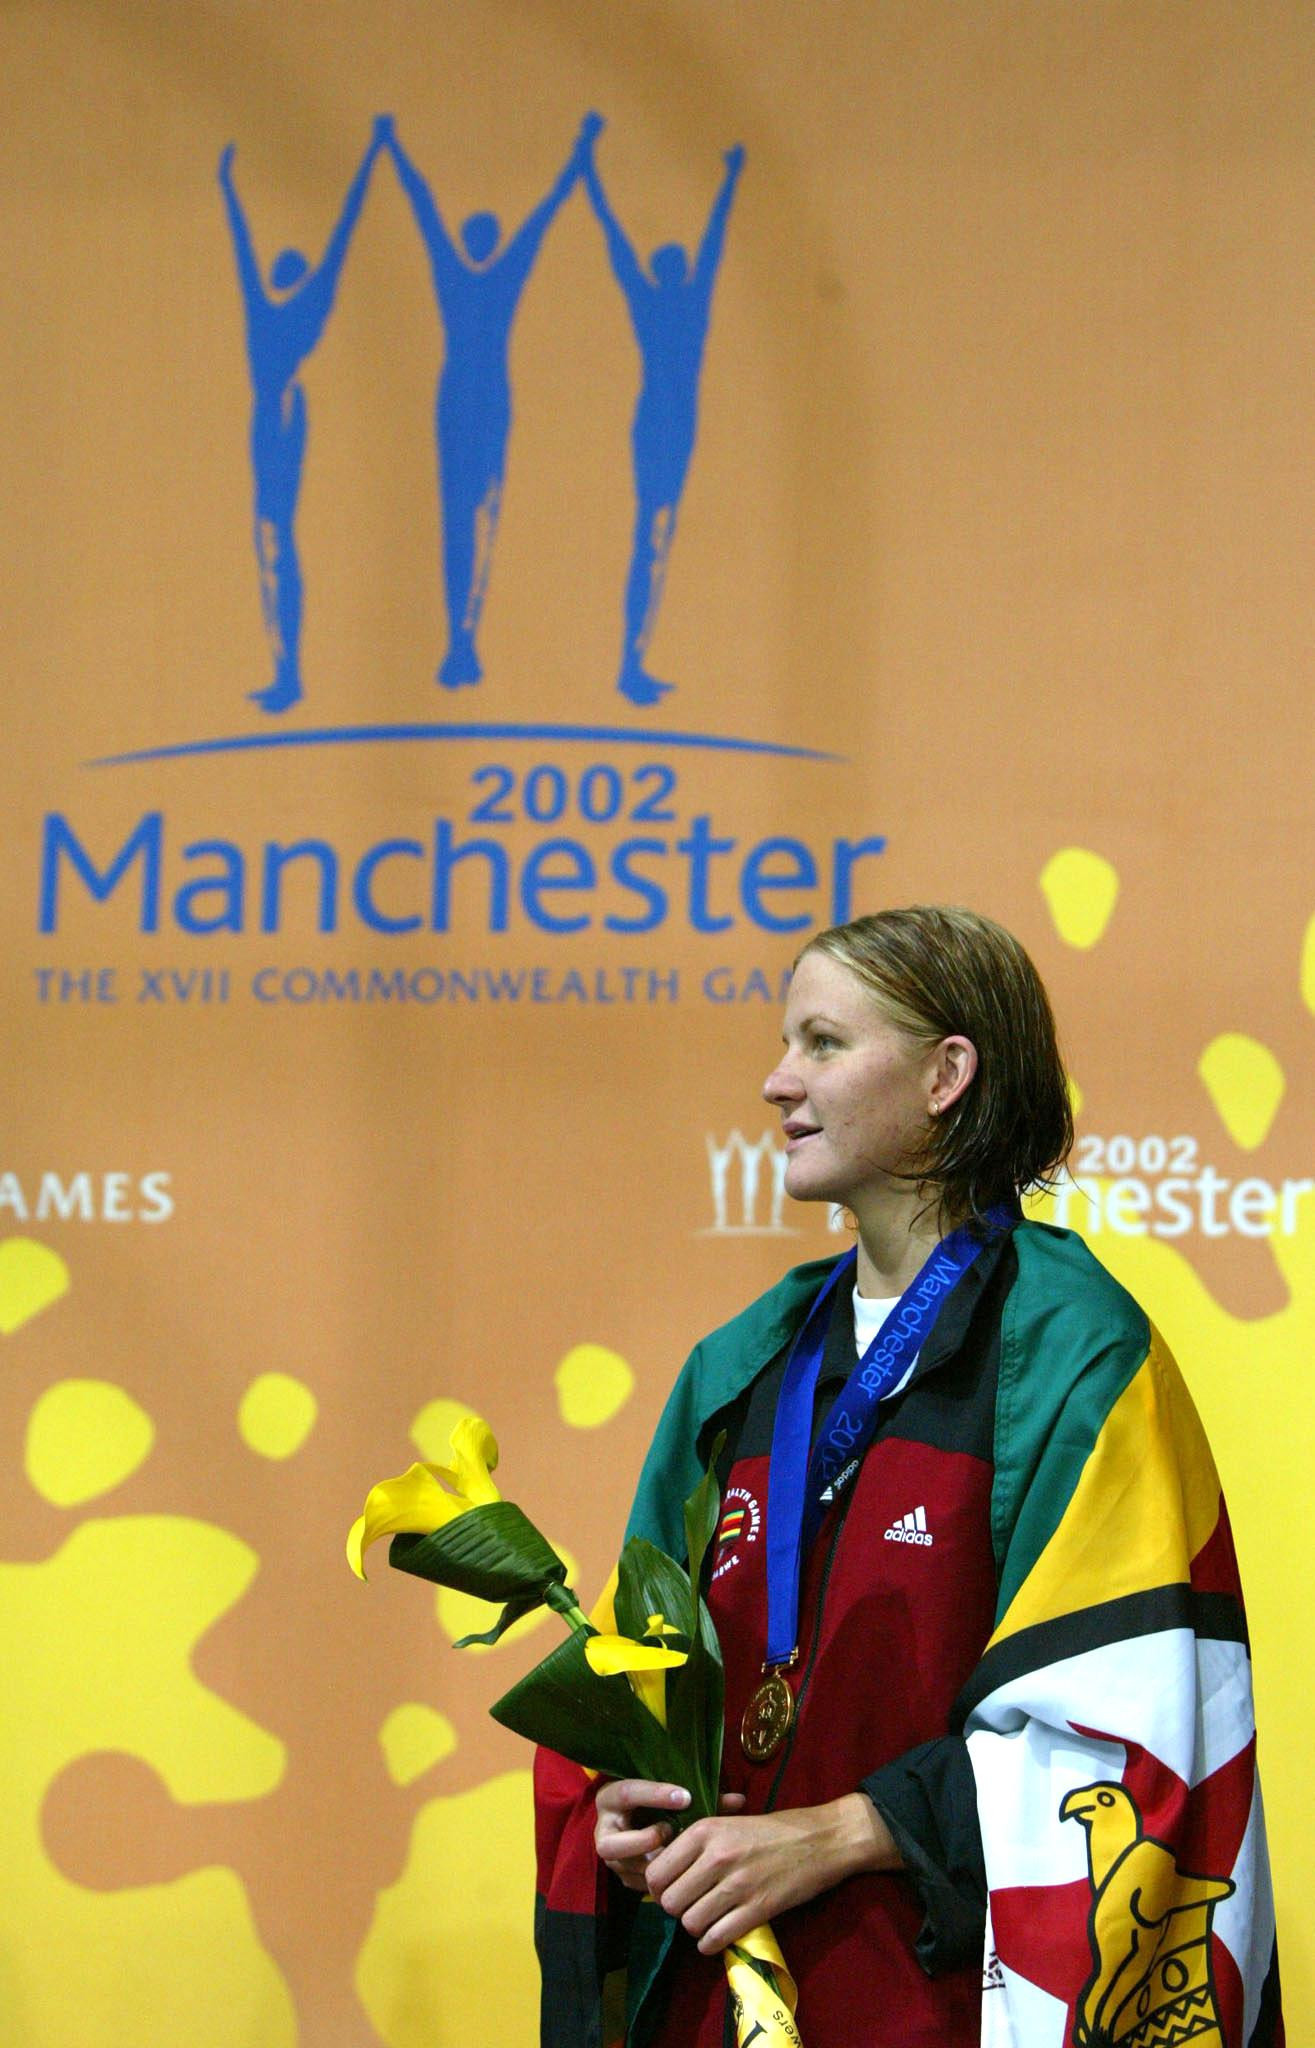 Zimbabwe's Kirsty Coventry celebrates winning a 200m individual medley gold medal at the Manchester 2002 Commonwealth Games - the last time her country competed in the event ©Getty Images